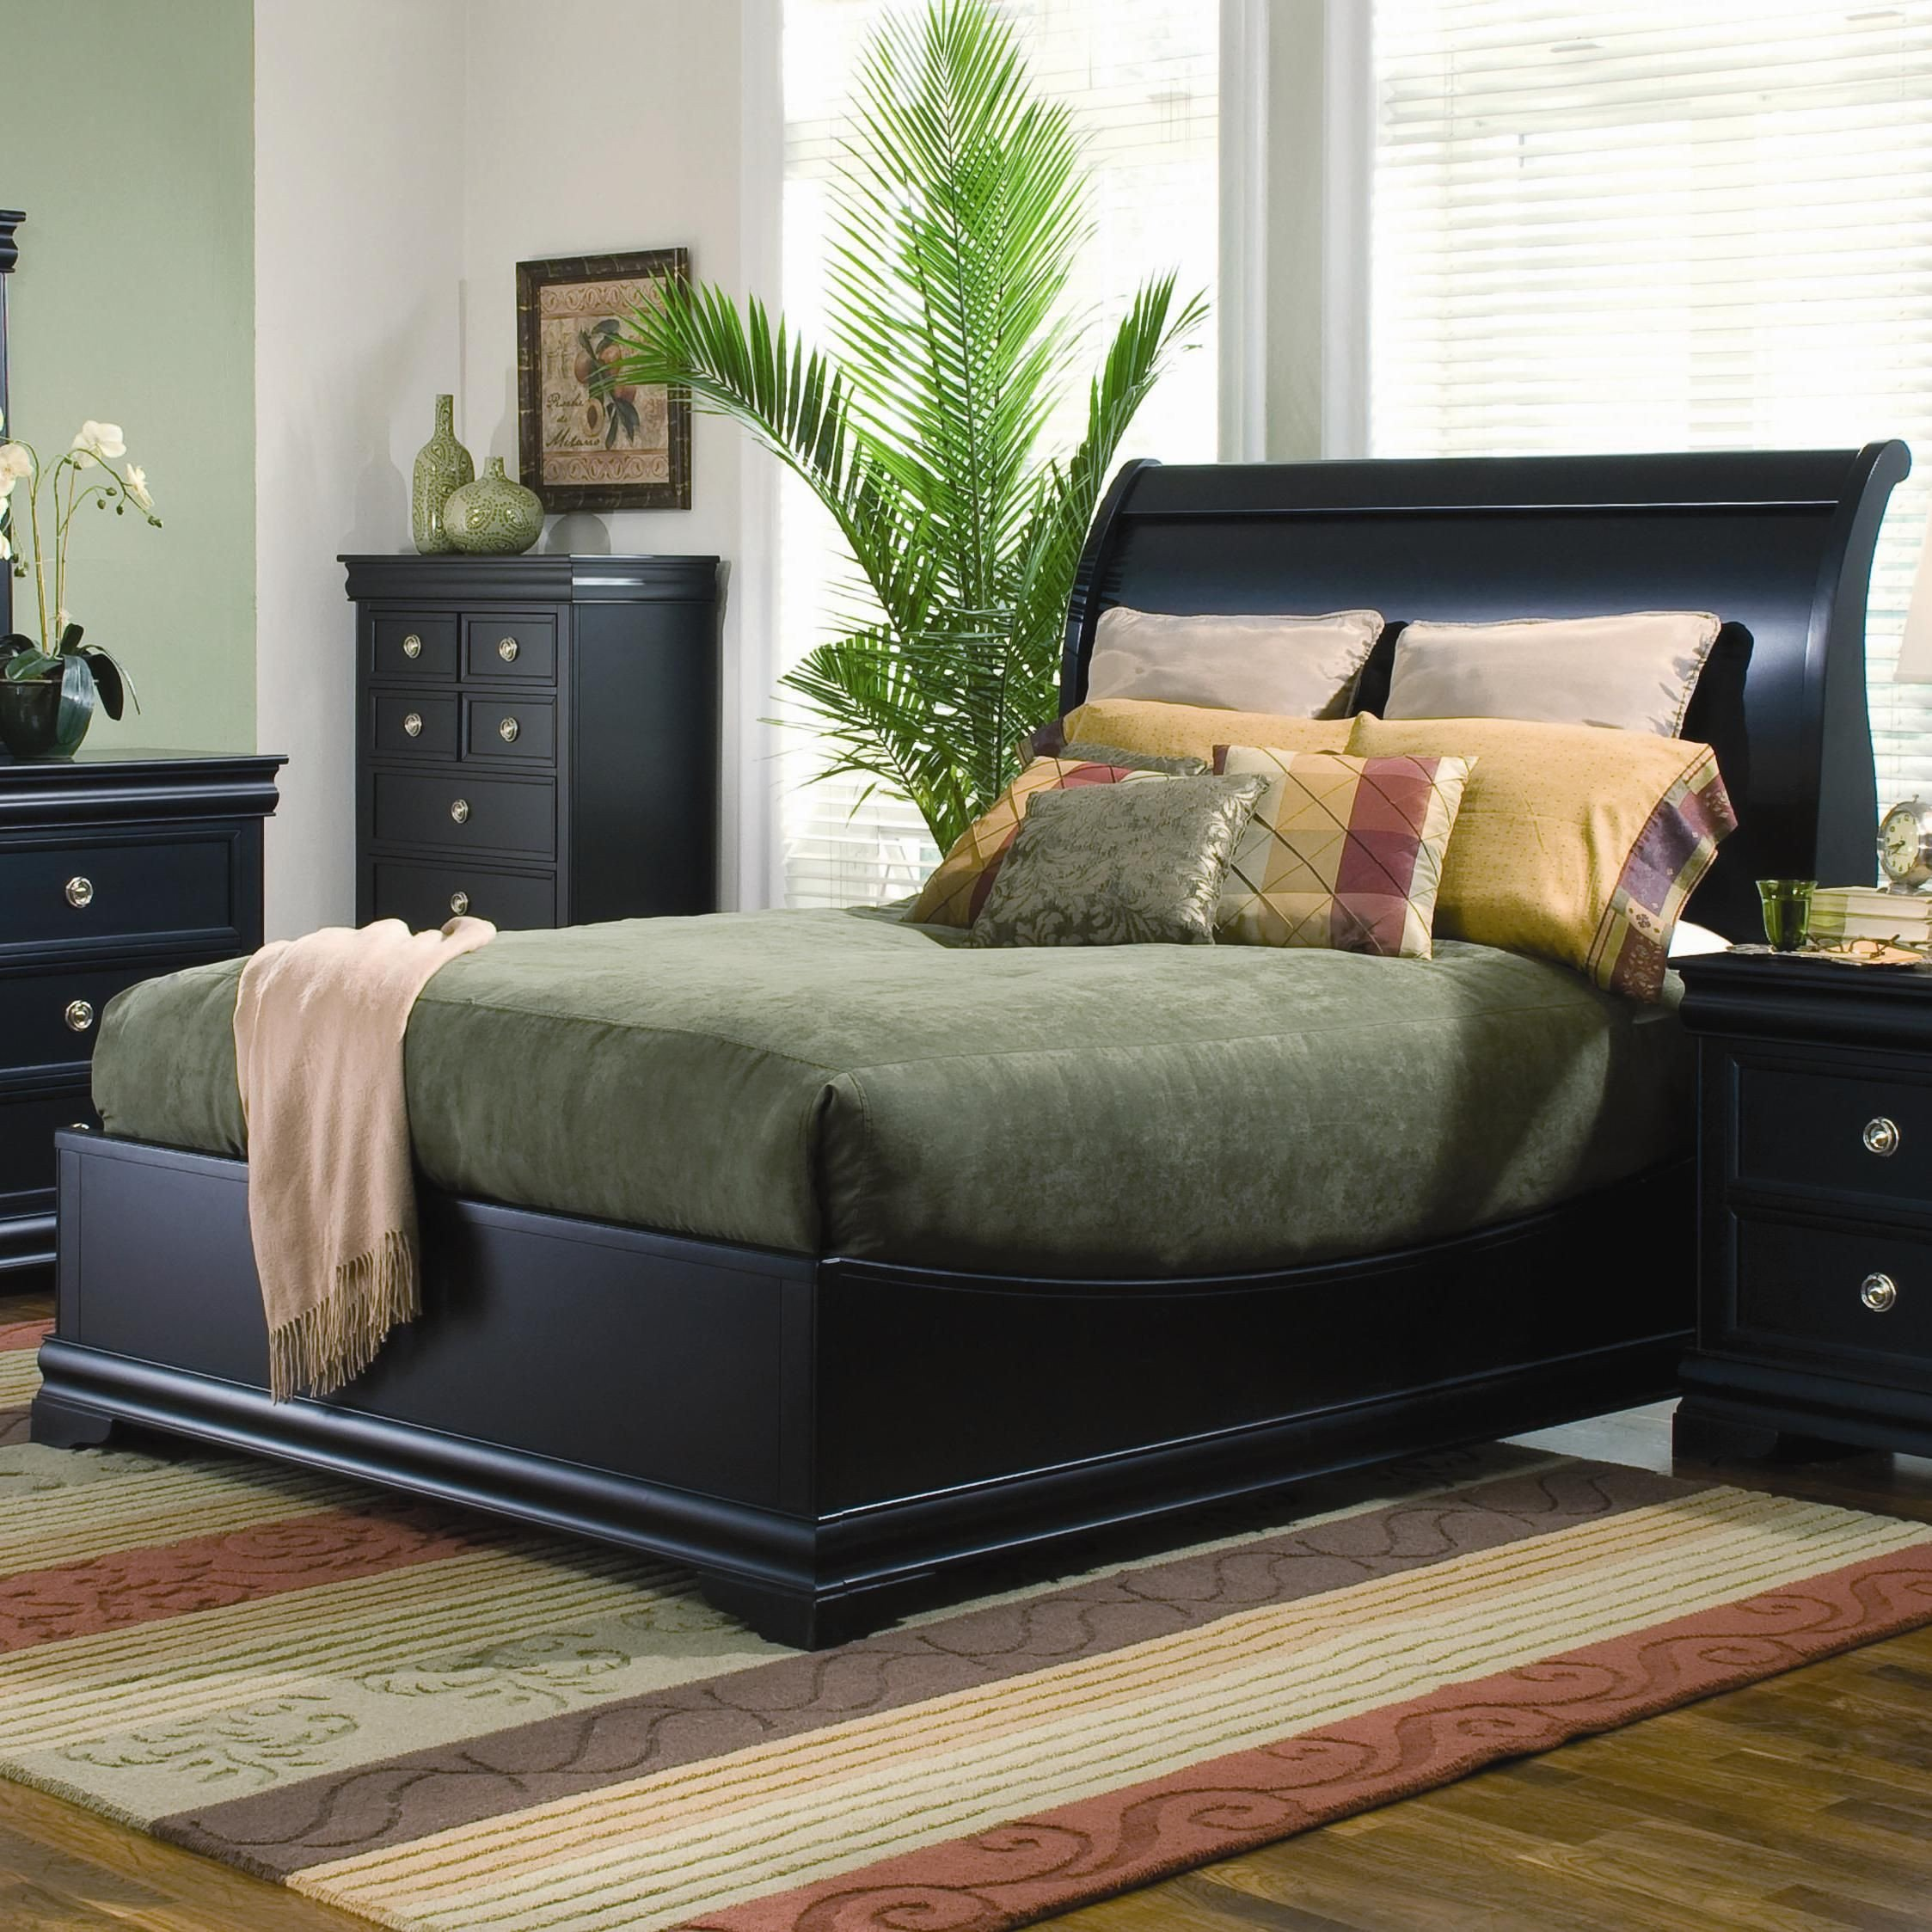 King Size Bedroom Benches Awesome Swept Back with Low Profile Footboard An Updated Sleigh Bed